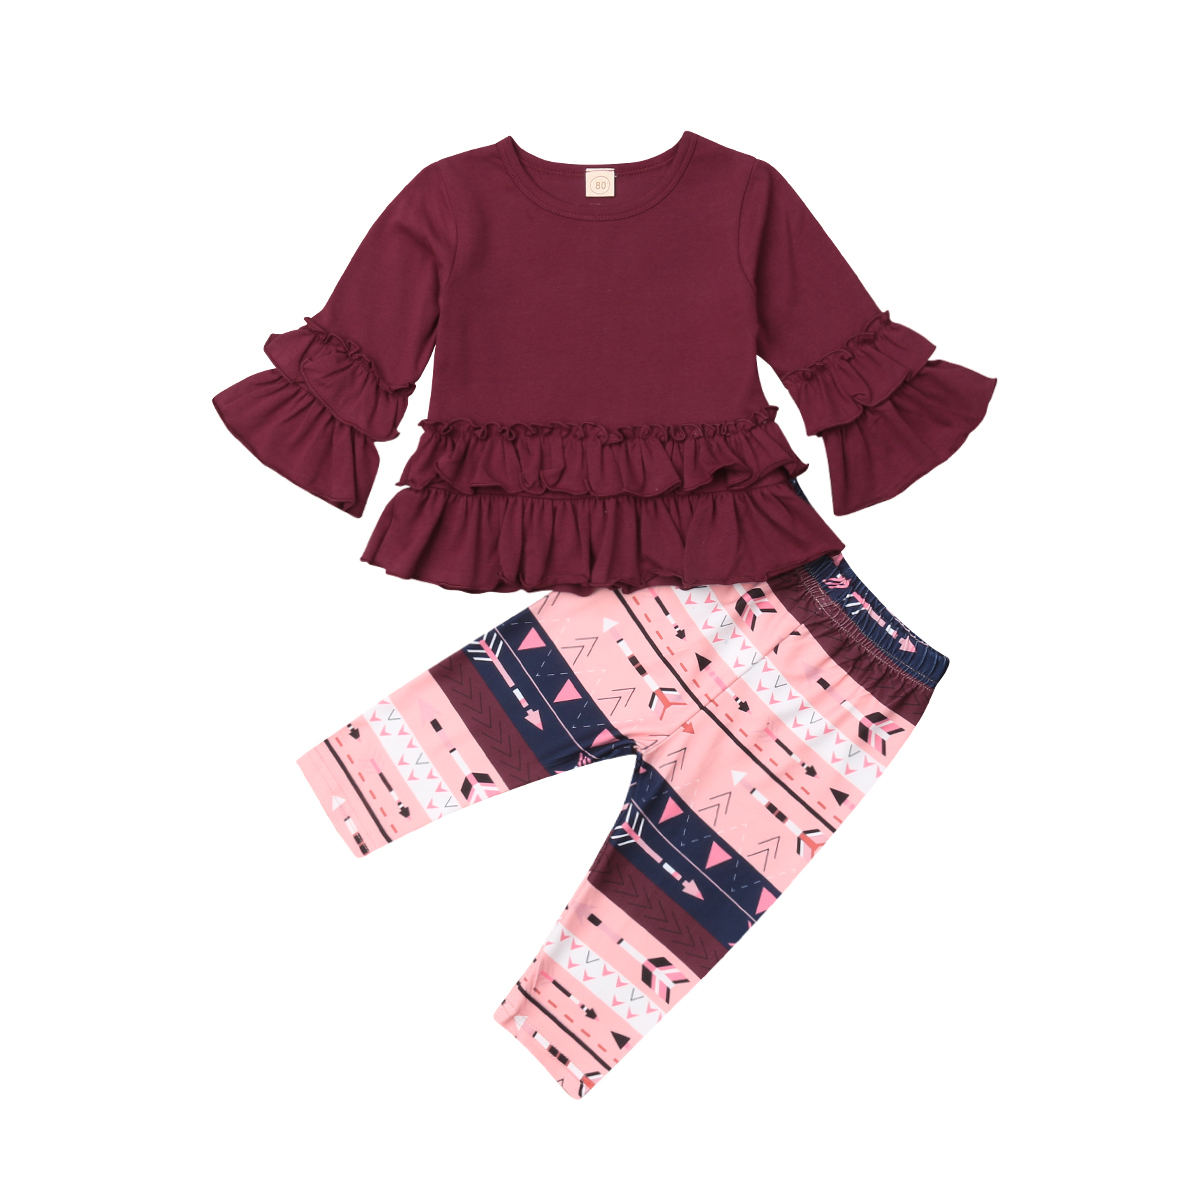 2pcs Floral Kids Baby Girls Outfits Clothes Sets Long Sleeve Tops Blouse Ruffles Pants Set Cute Clothing Girl 6M-4T